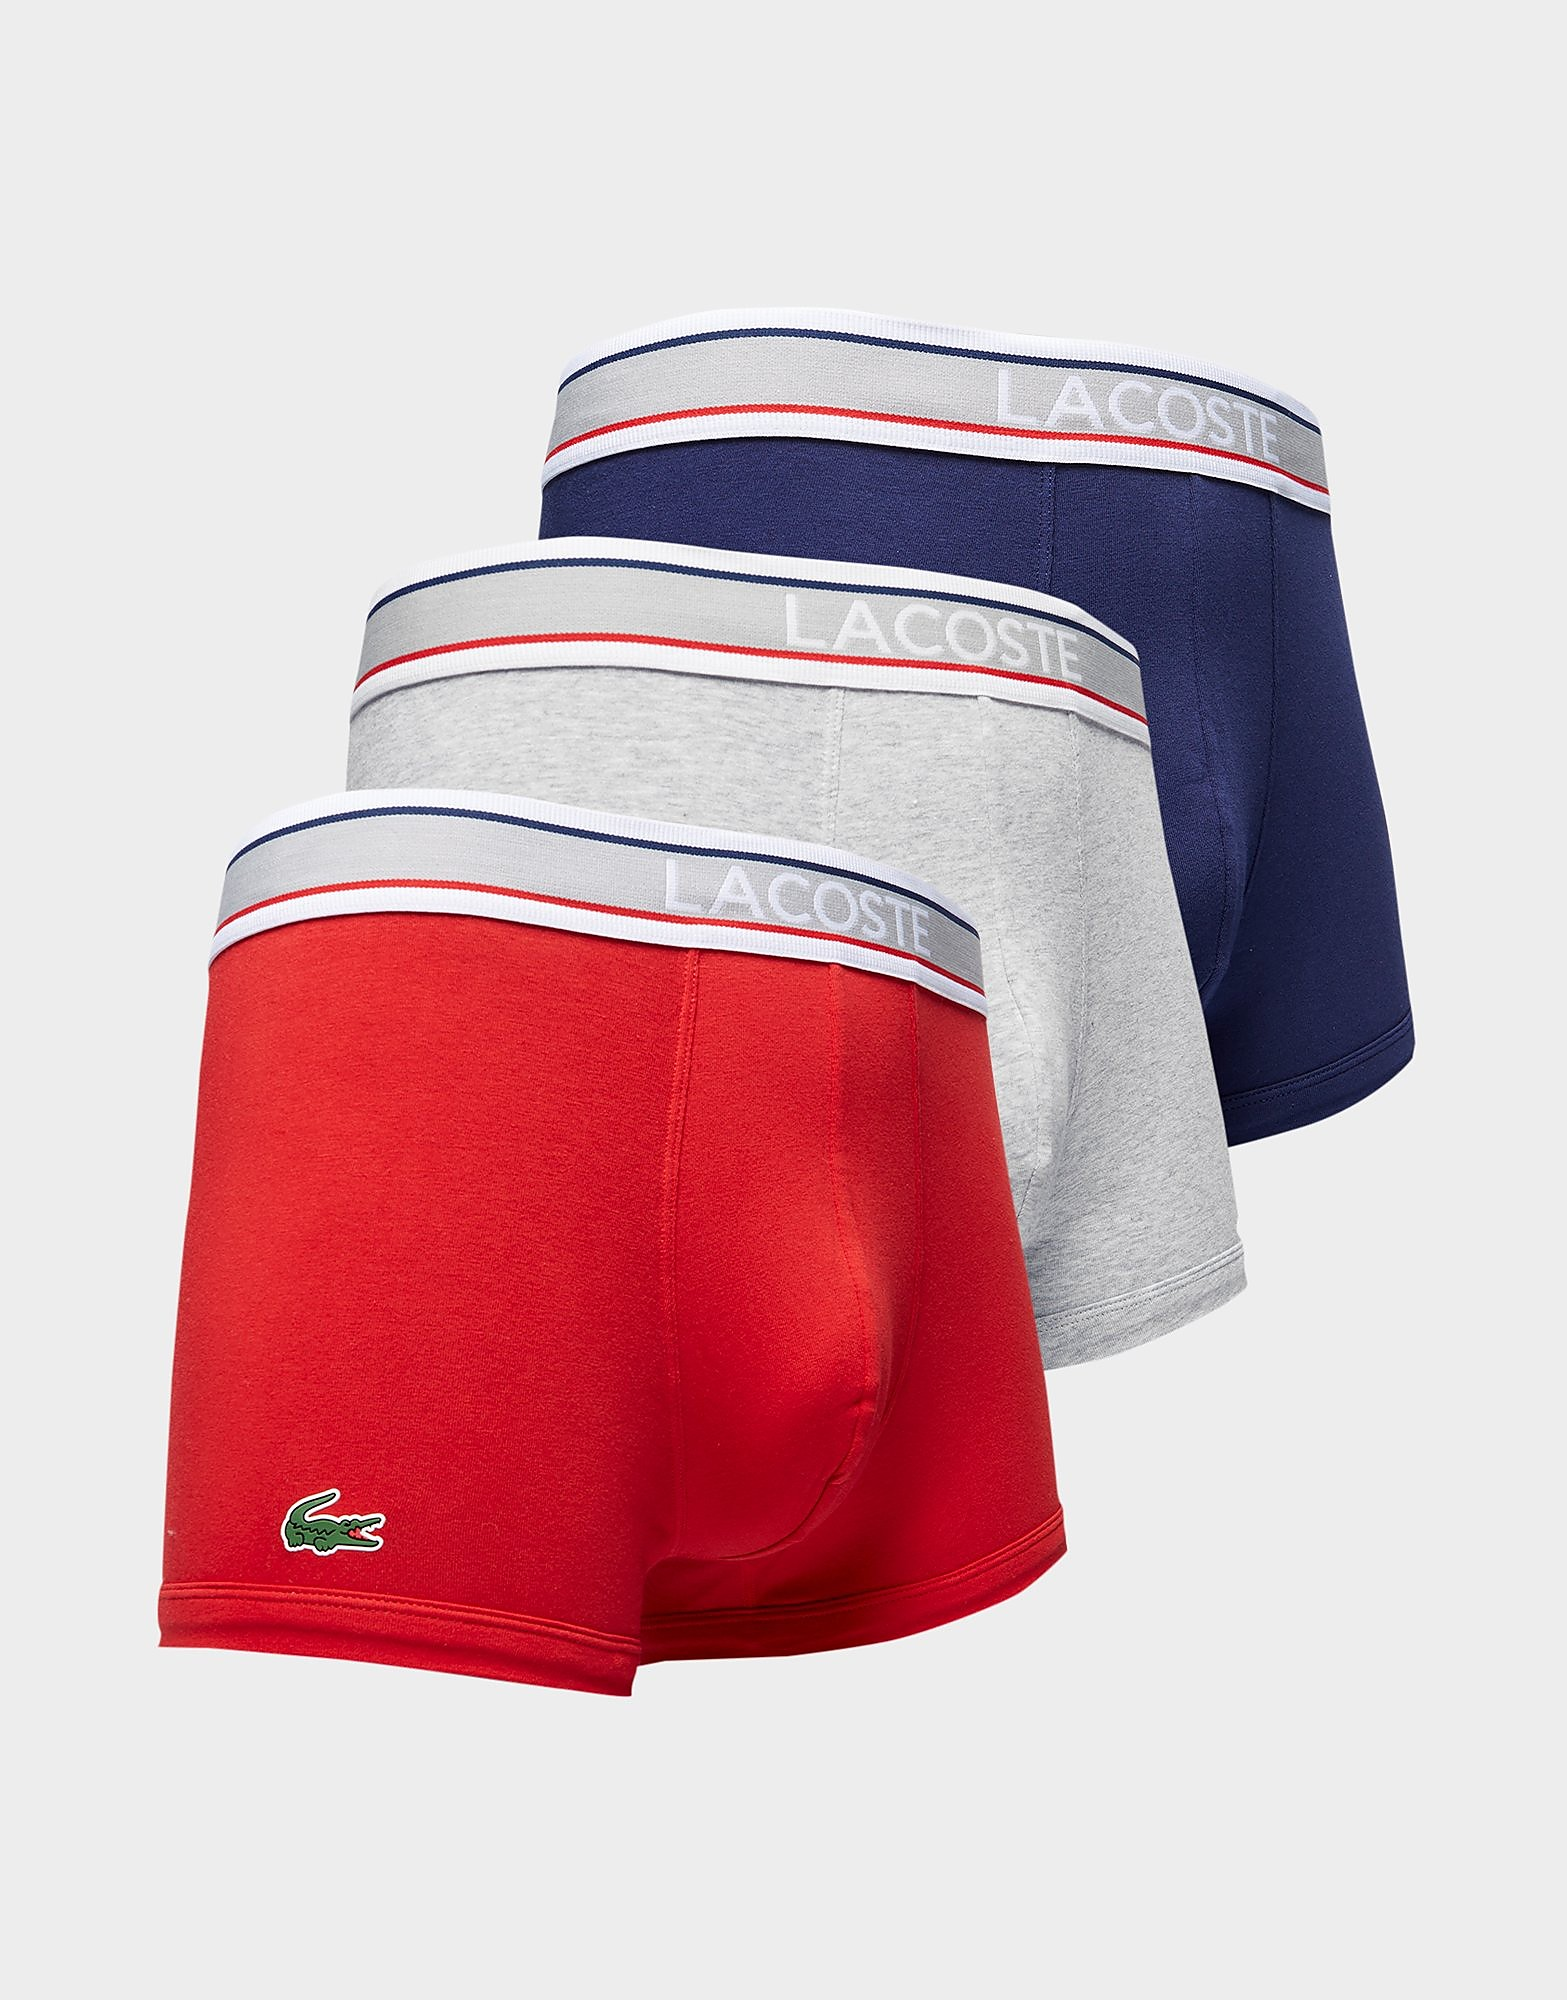 Lacoste 3 Pack Trunks